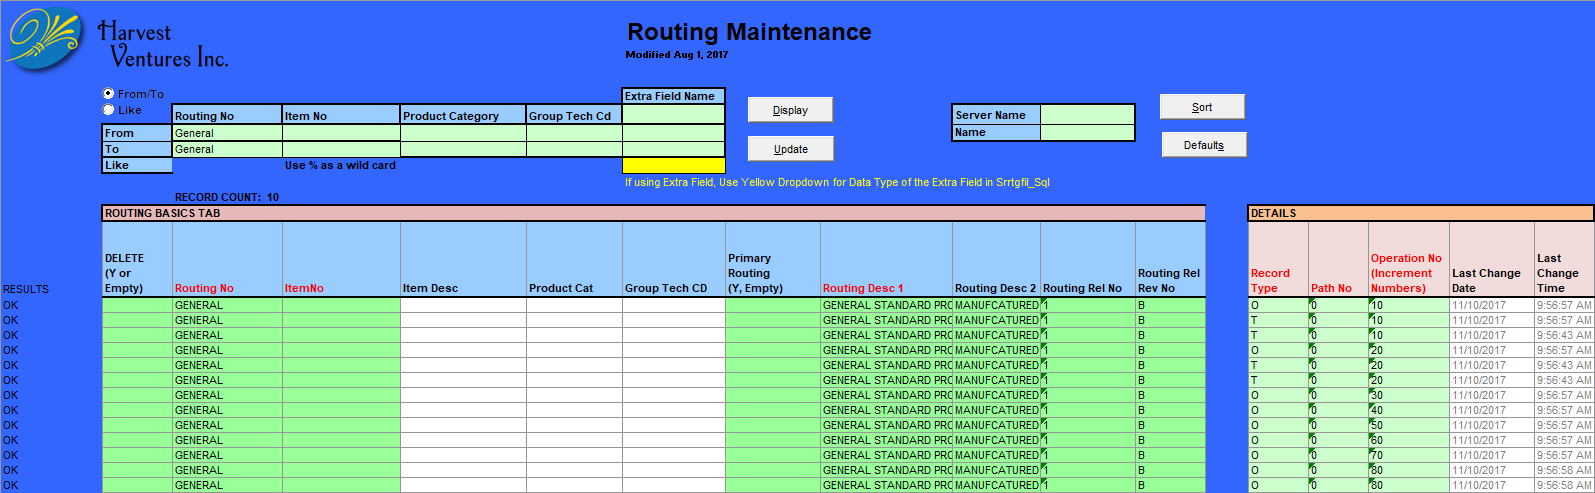 routing maintenance screen capture